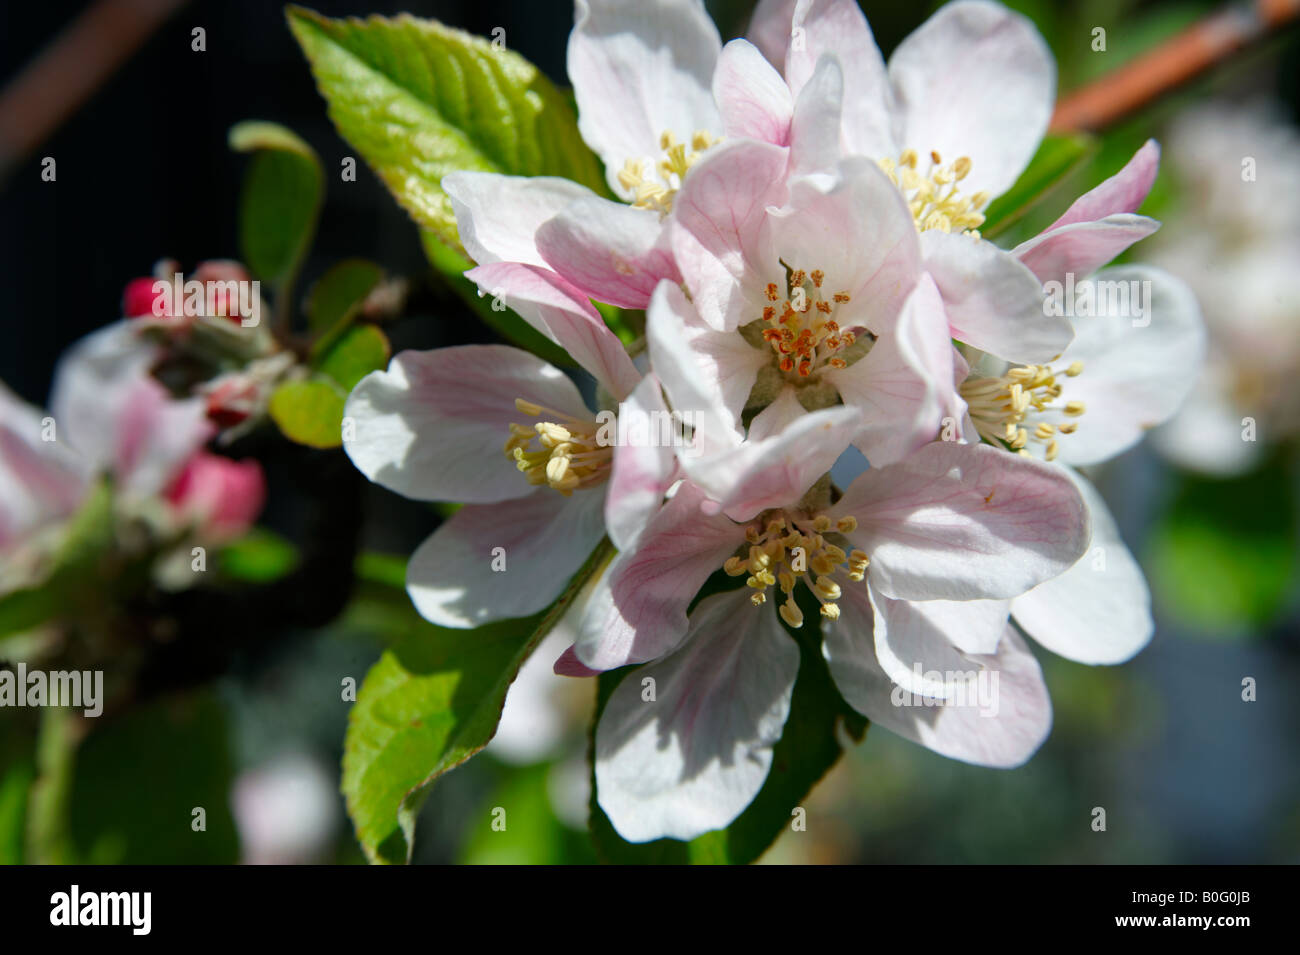 Apple Blossom flowering on a tree - Stock Image